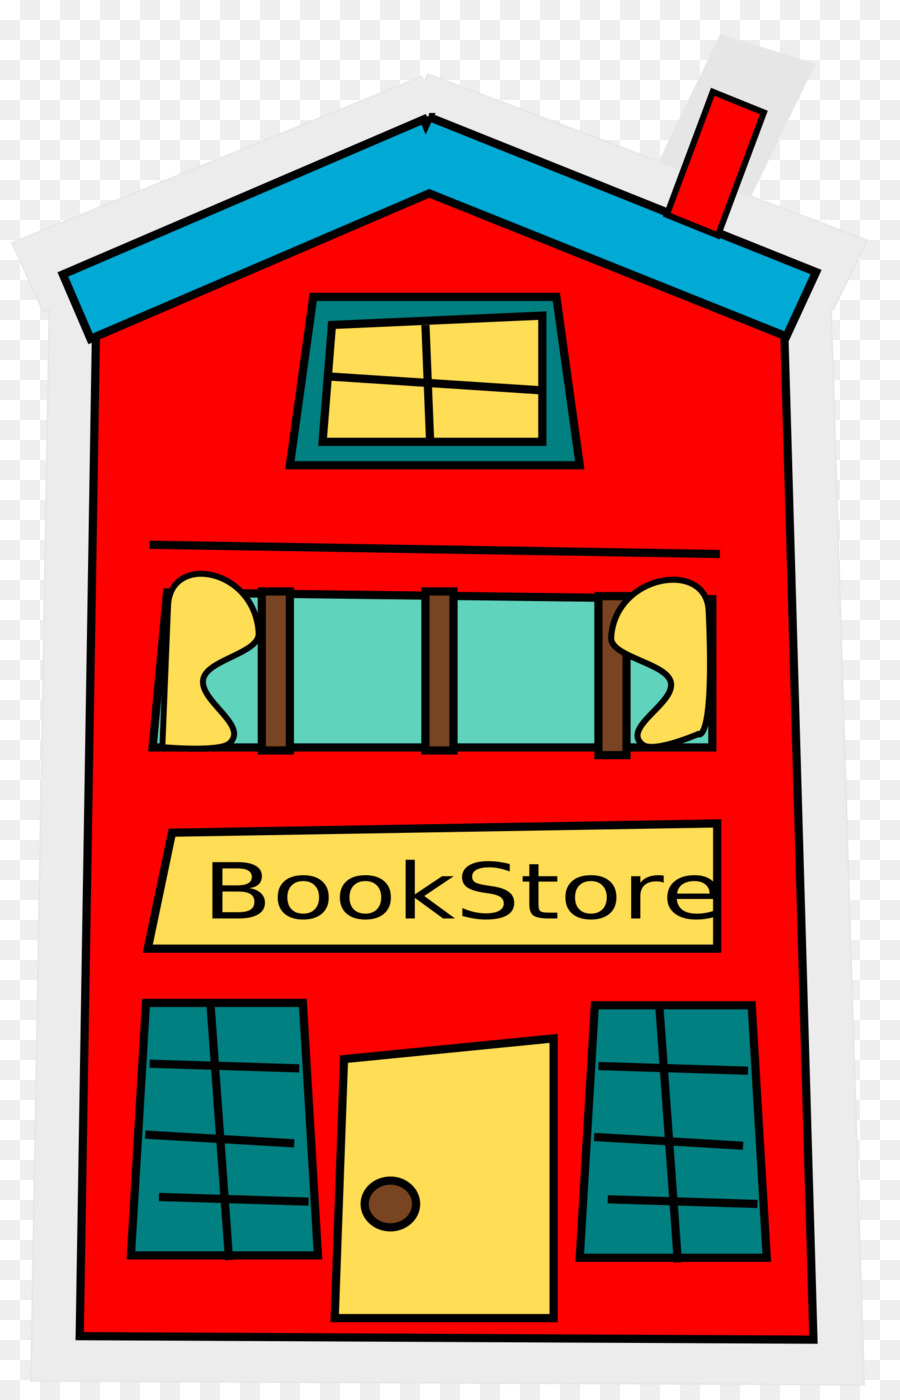 Book Drawingtransparent png image & clipart free download.